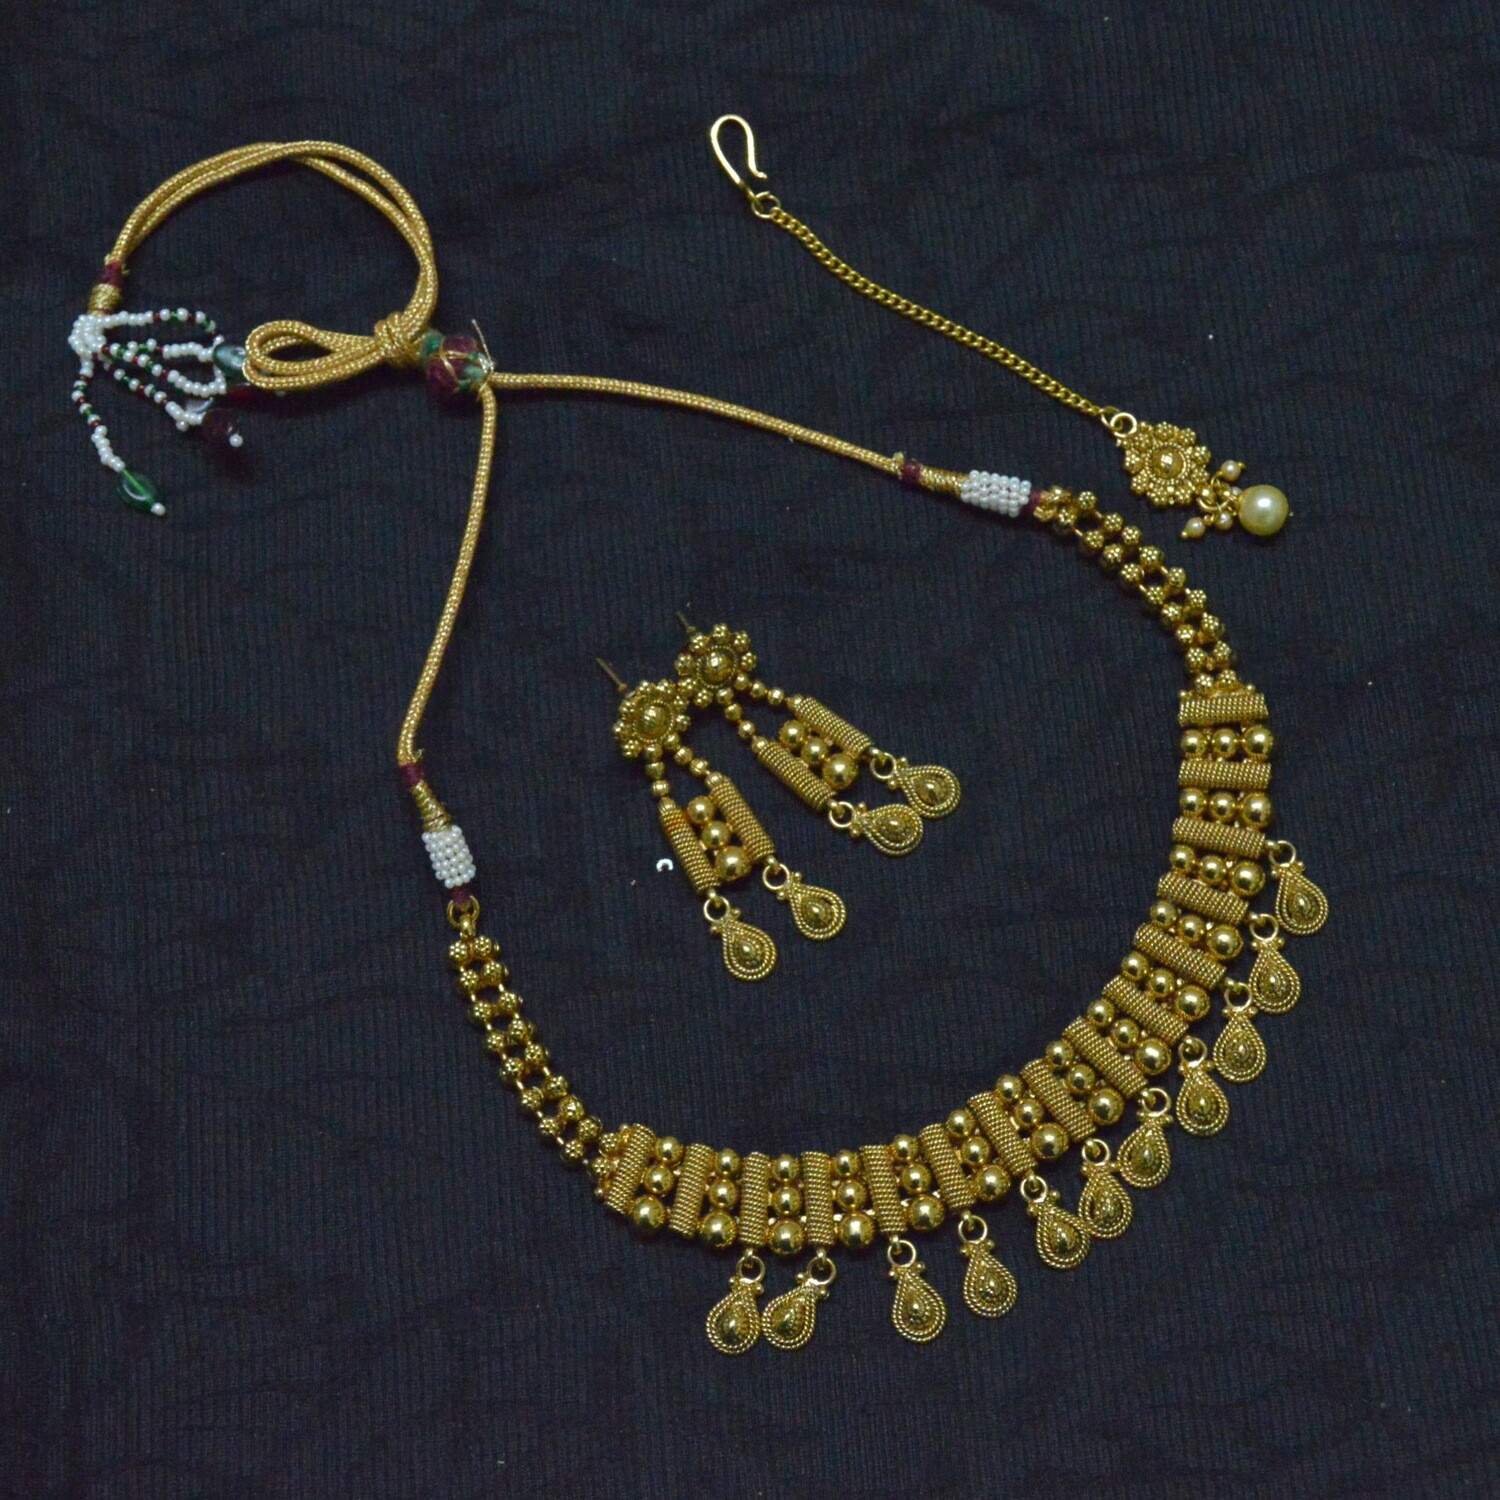 FASHION JEWELLERY NECKLACE SET NECKLACE NETHTHI CHUTTI AND EAR RINGS